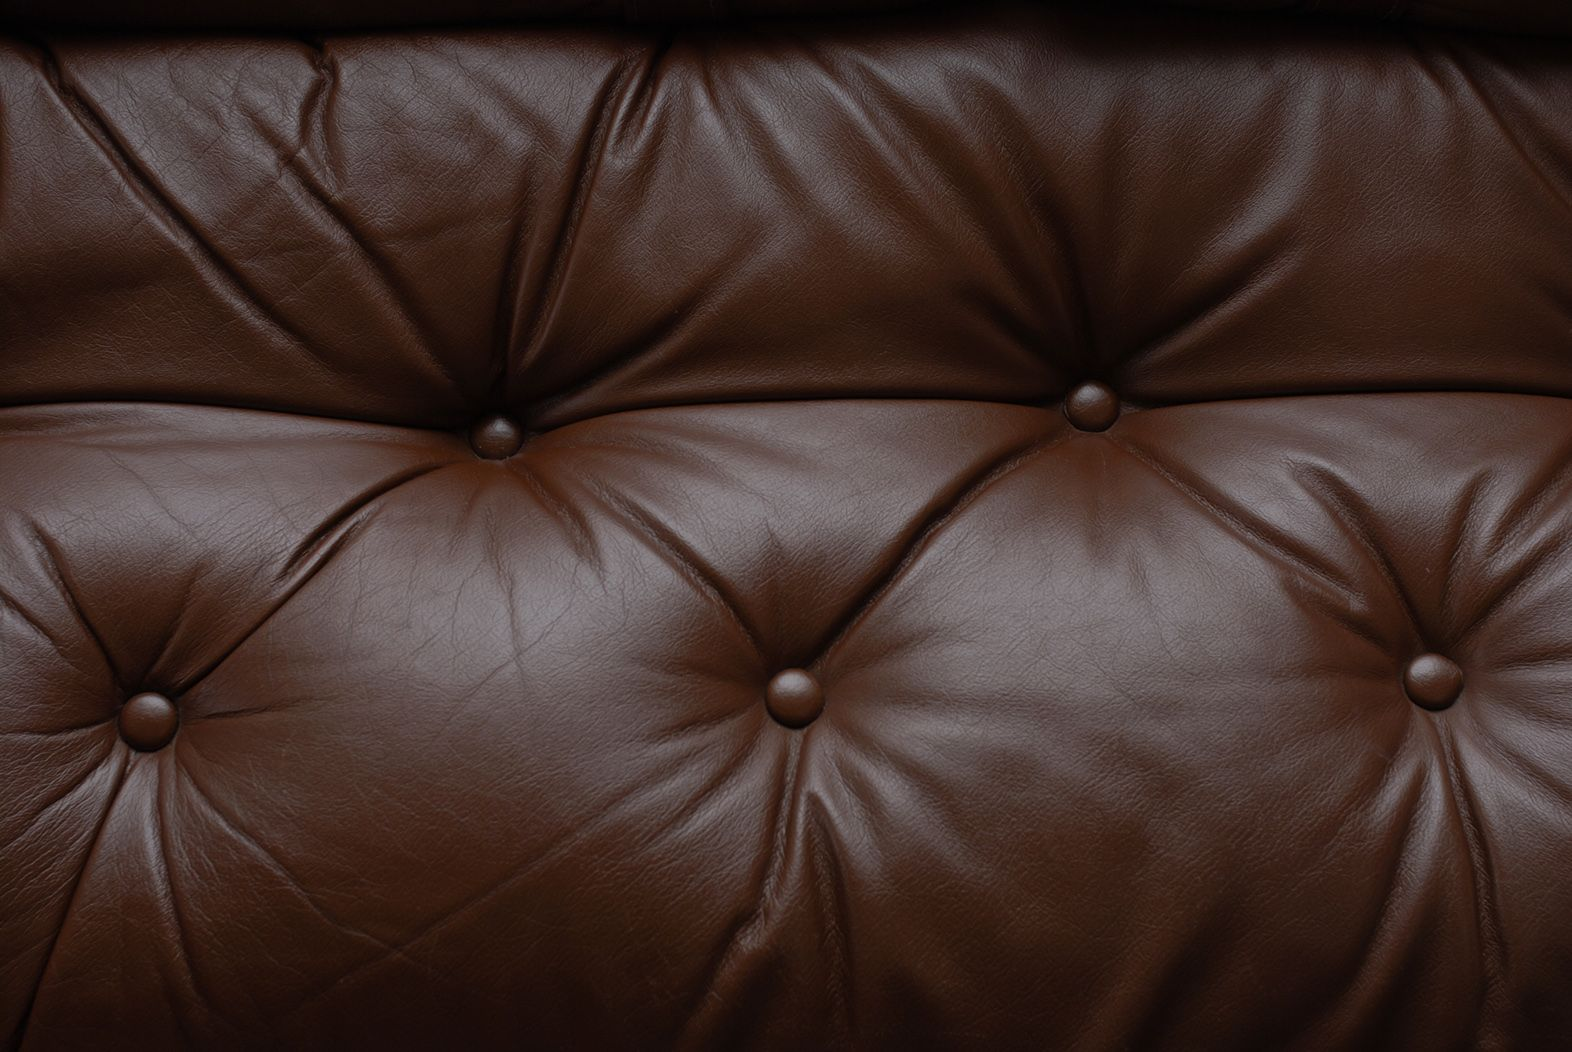 Black leather chair texture - Free Stock Photo 1892 Leather Sofa Background Texture